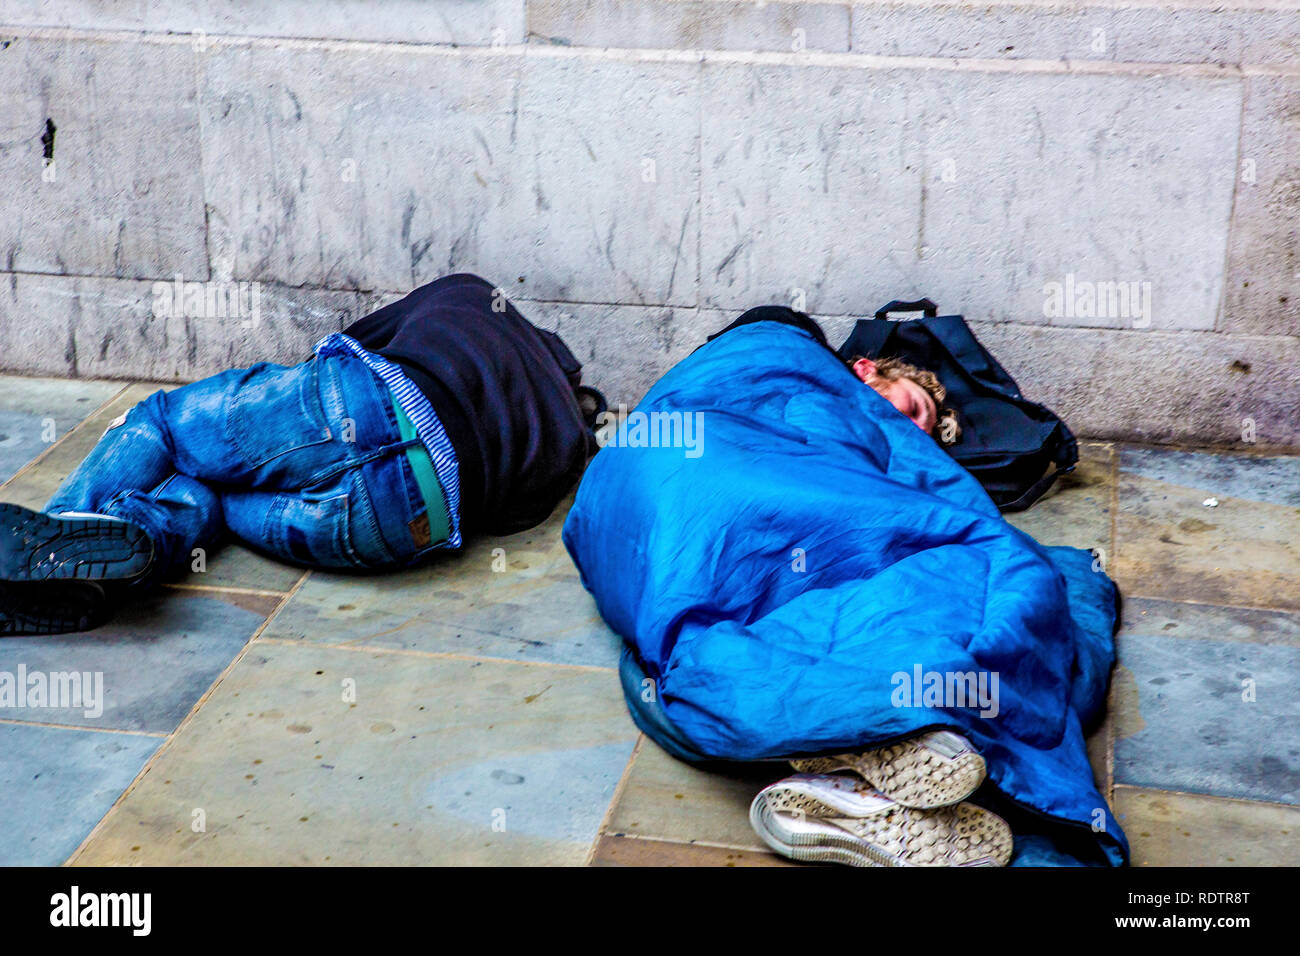 London, UK. Two men sleeping on the streets of the capital - one in a sleeping bag; one without. Stock Photo